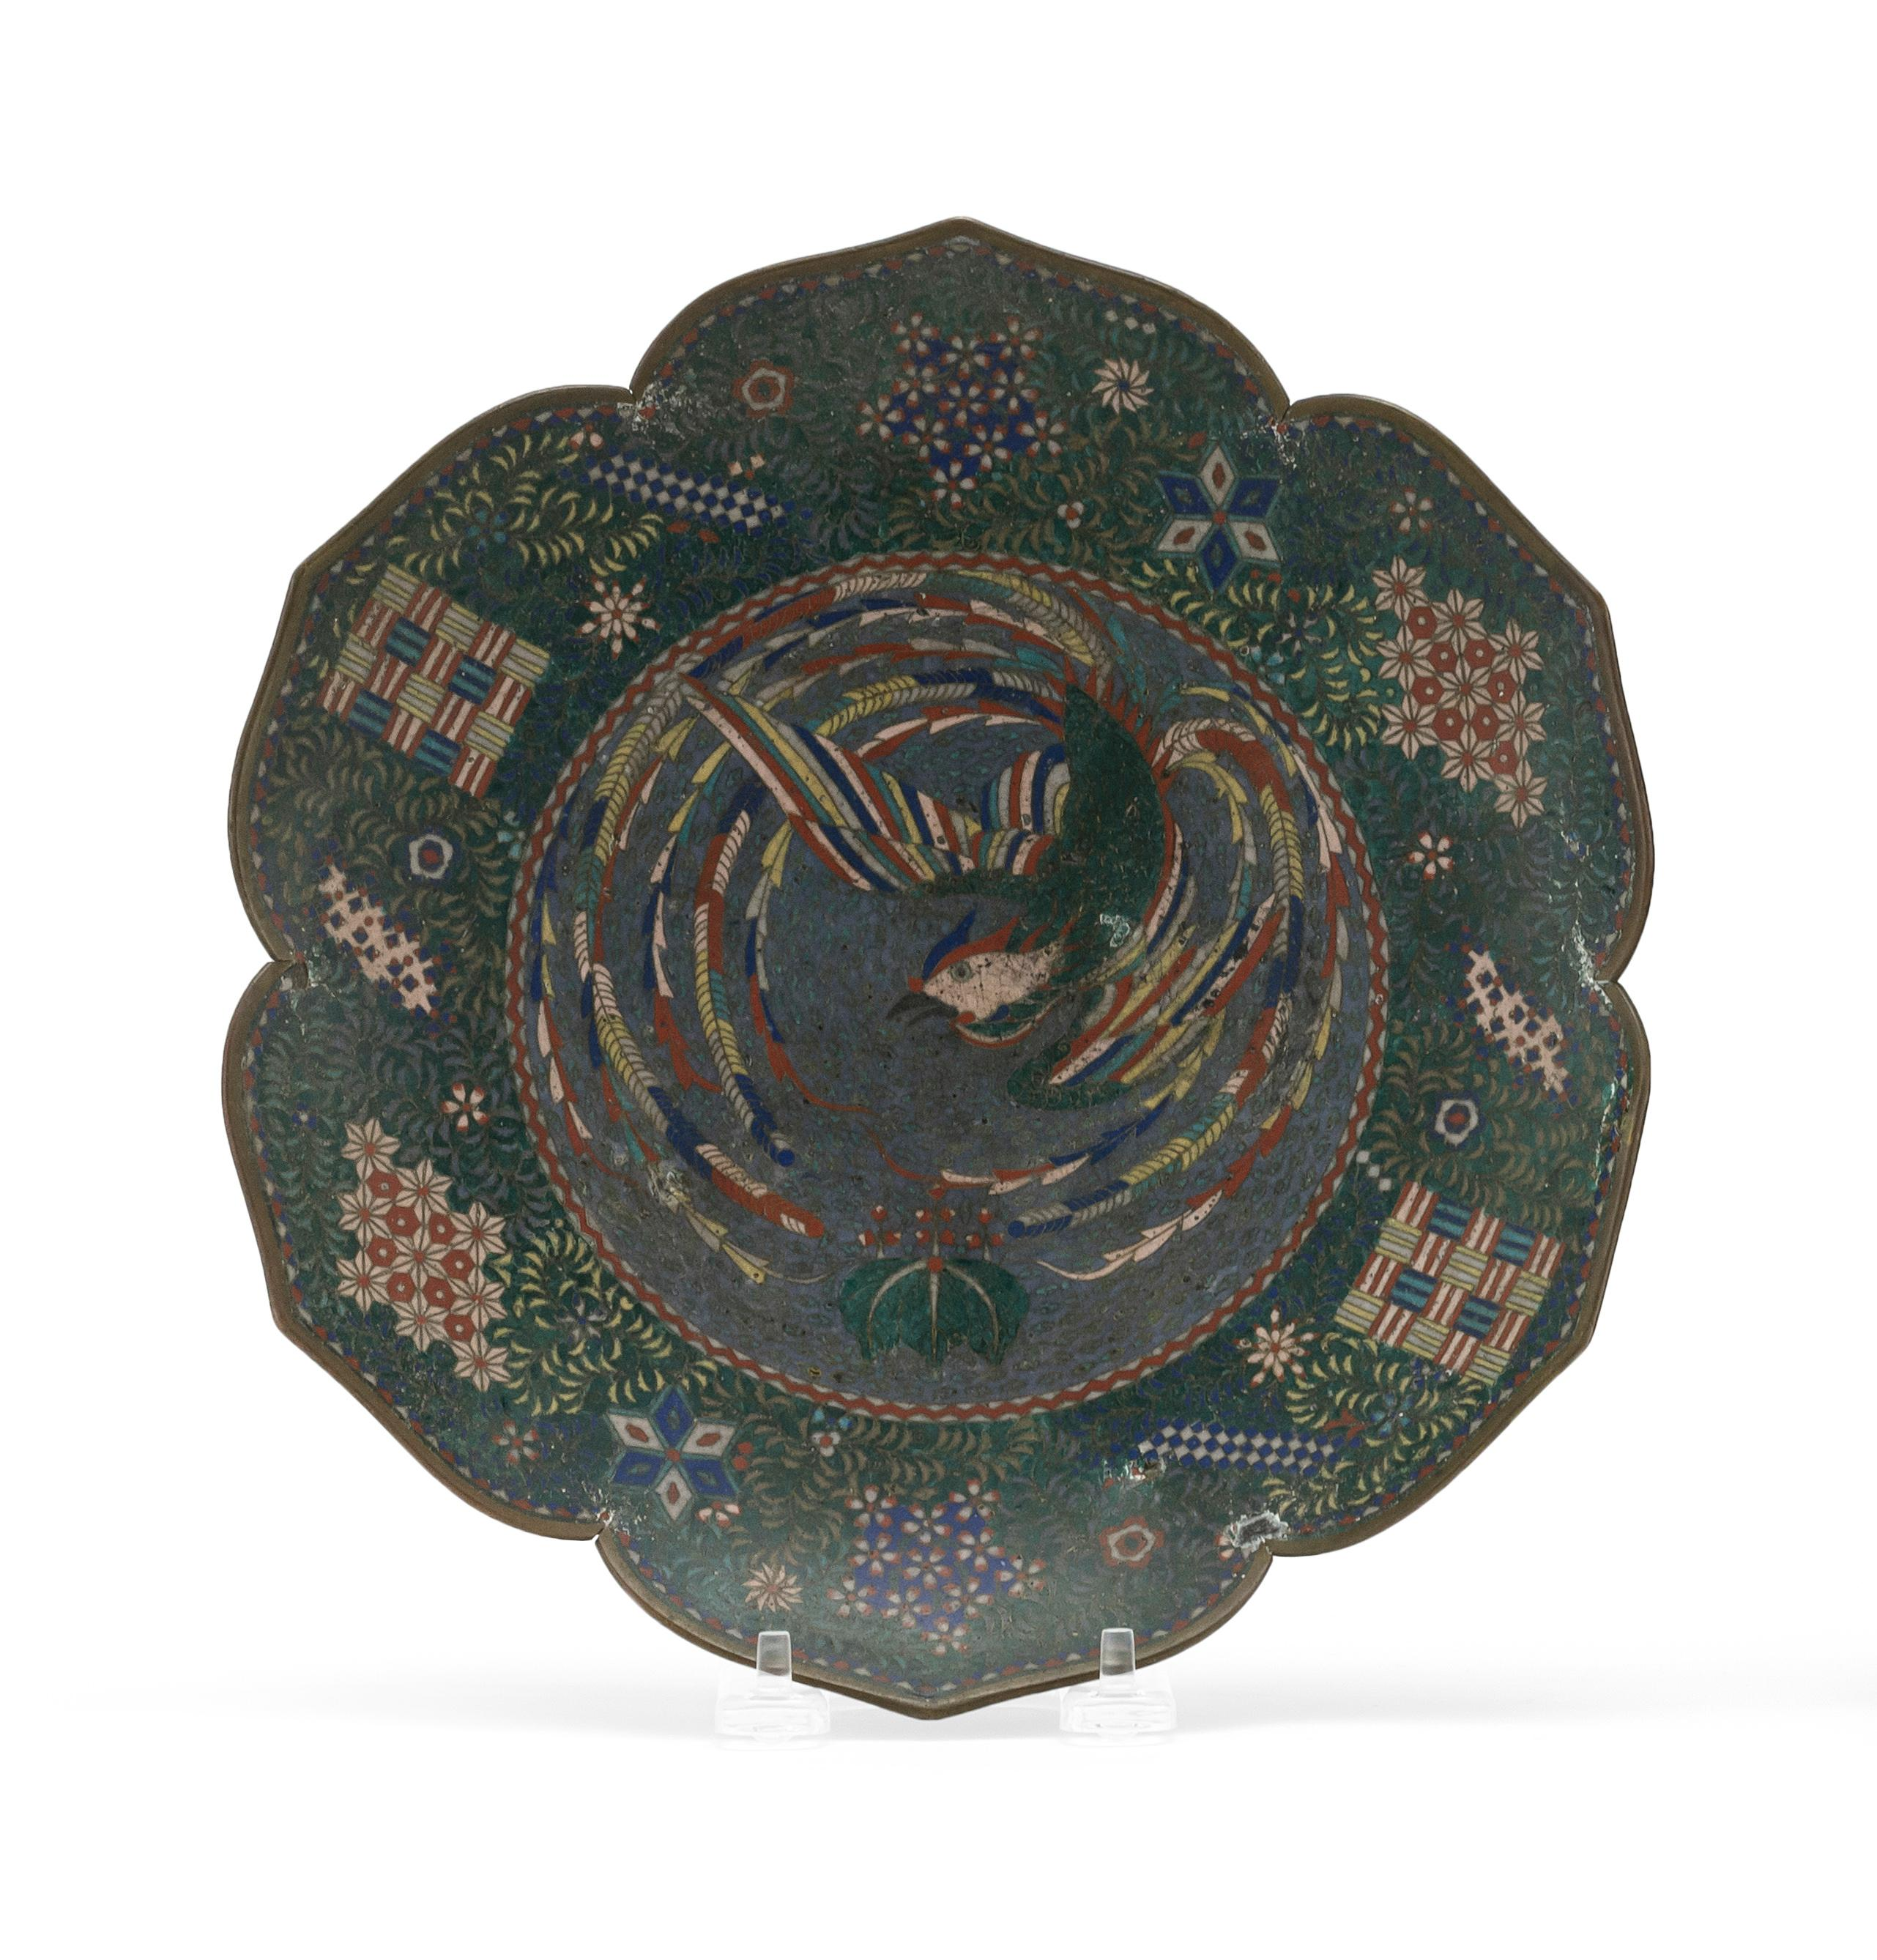 JAPANESE CLOISONNÉ ENAMEL PLATE Attributed to Kaji Tsunekichi (1803-1883). In six-petal flower form. Obverse with decoration of ho b...